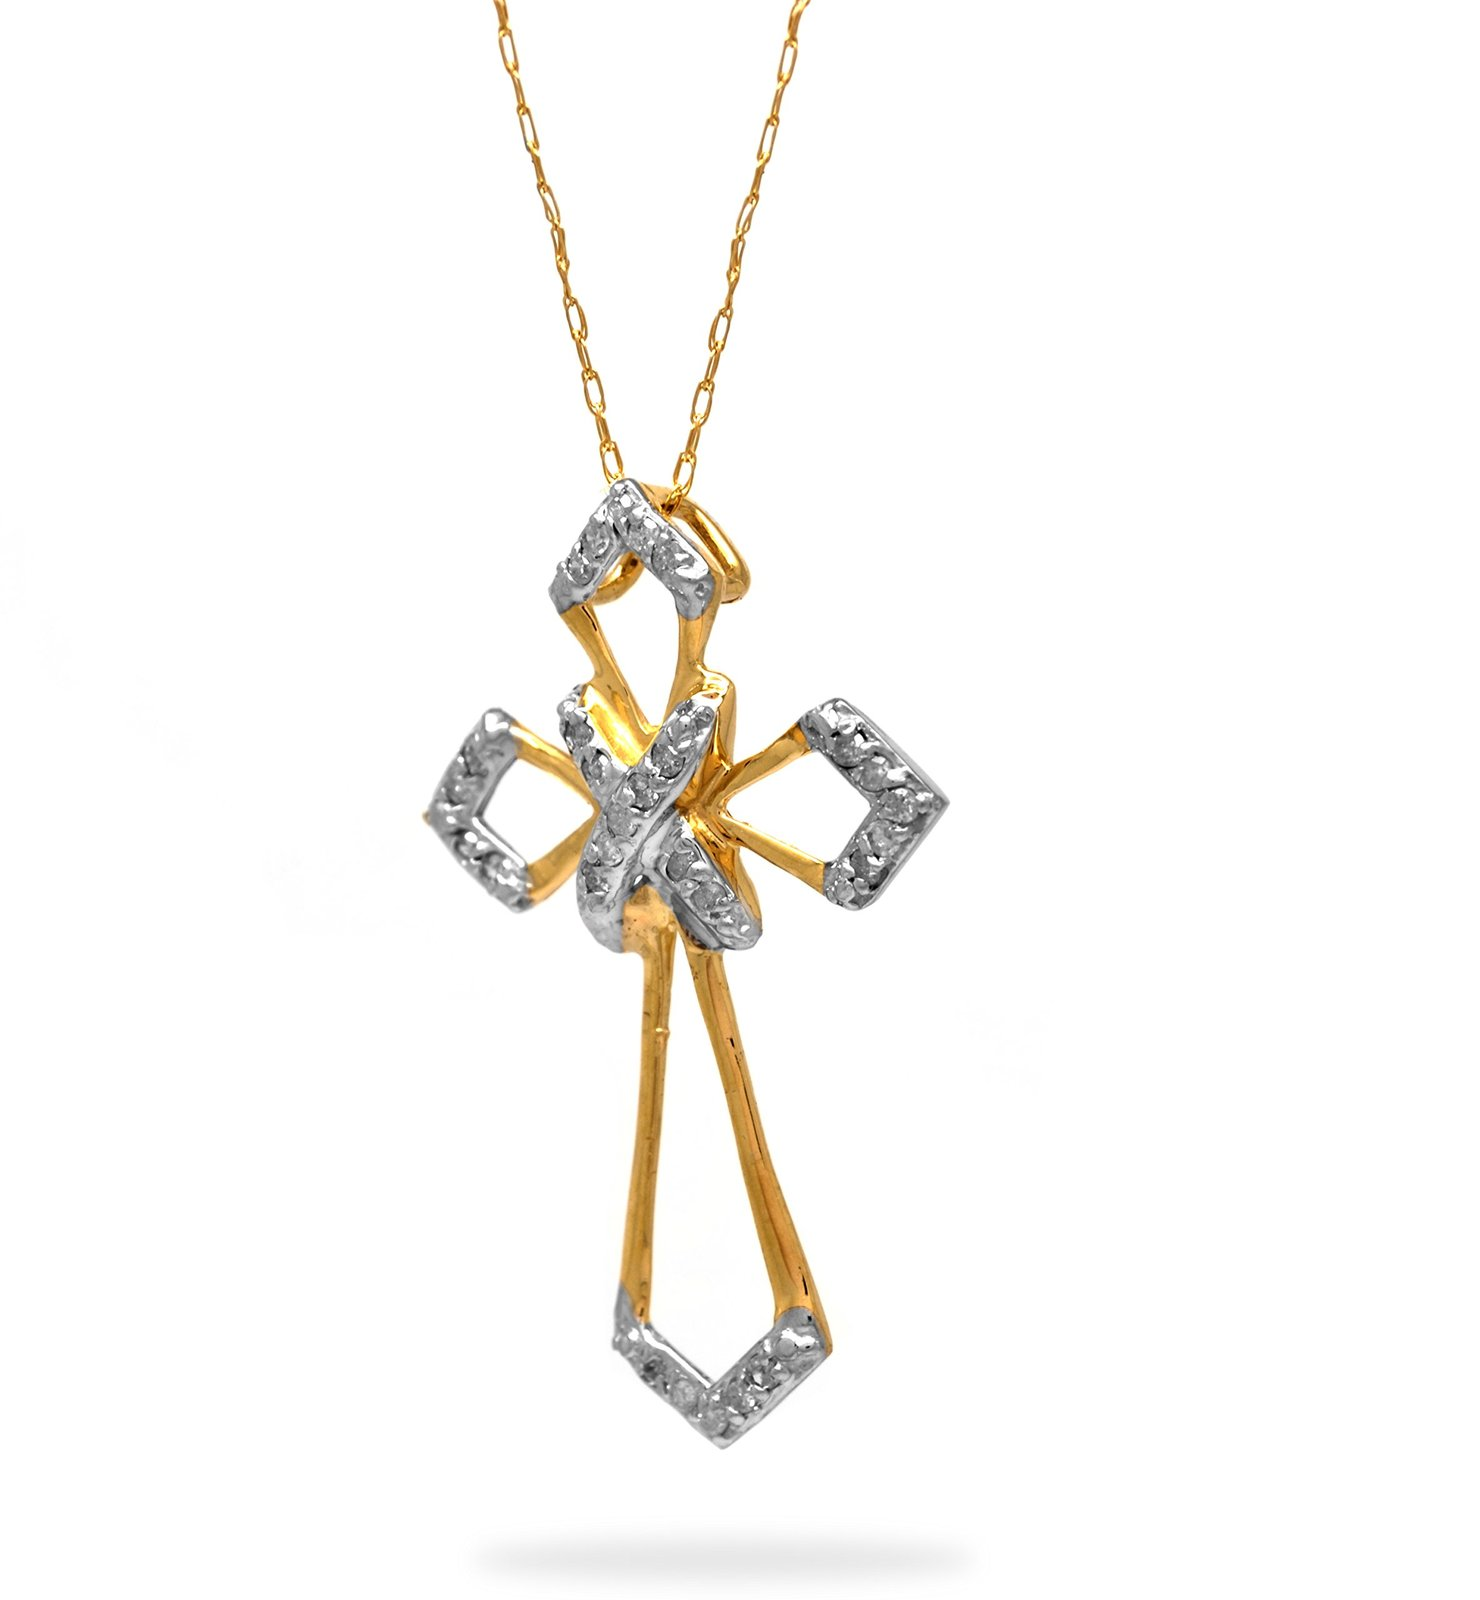 10 K Yellow Gold 0.25 Cttw Diamond Cross Pendant with Cable Chain